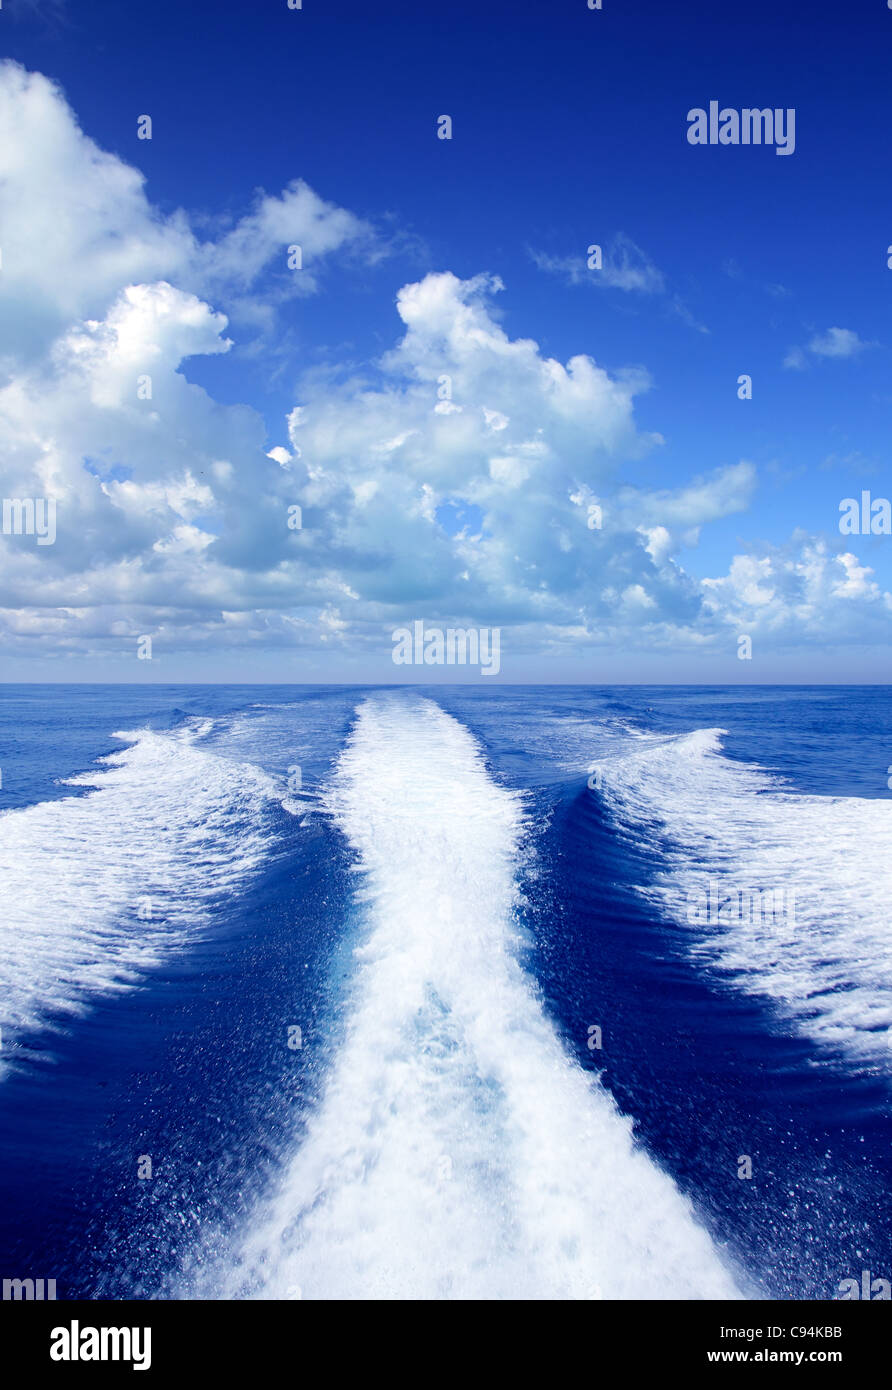 Boat wake prop wash on blue ocean sea in sunny day - Stock Image